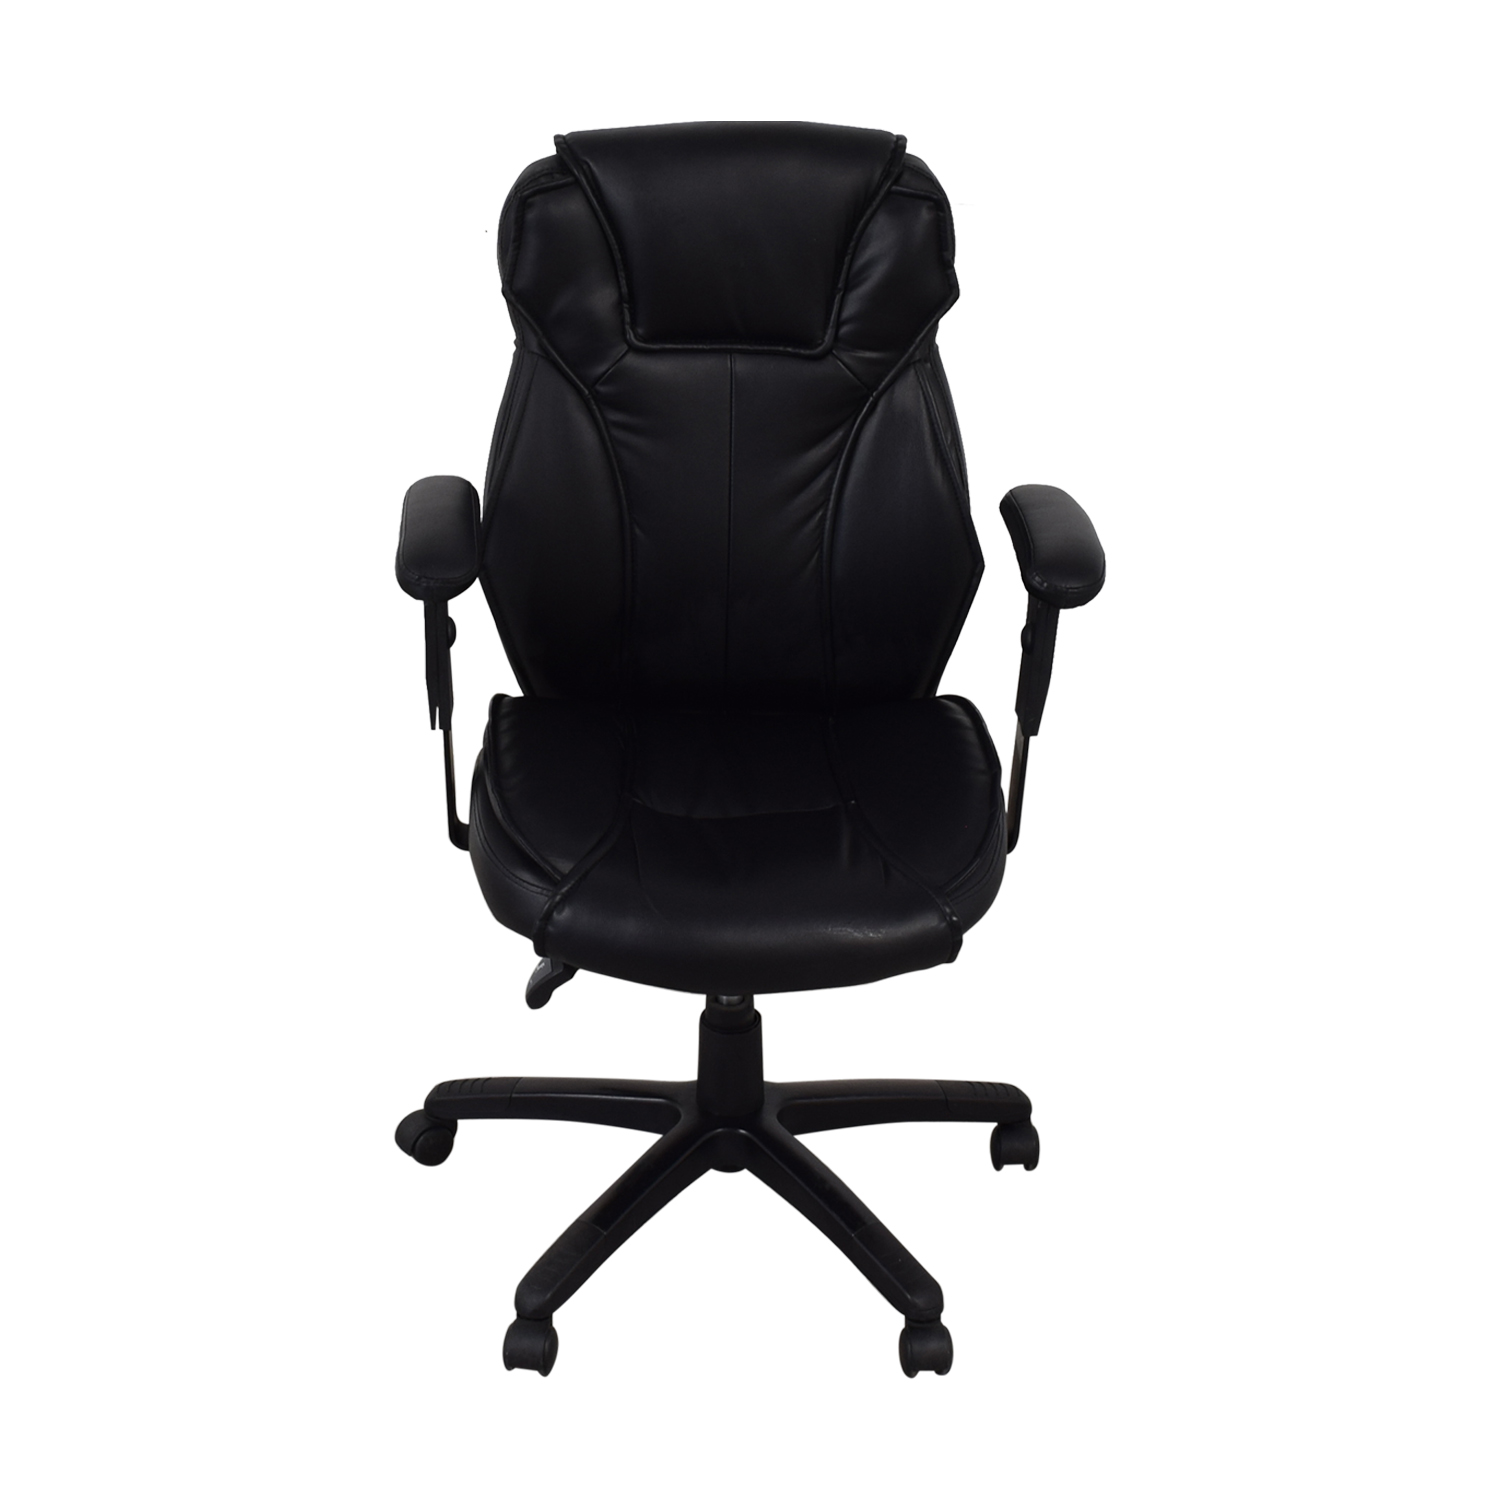 Black Office Chair / Chairs